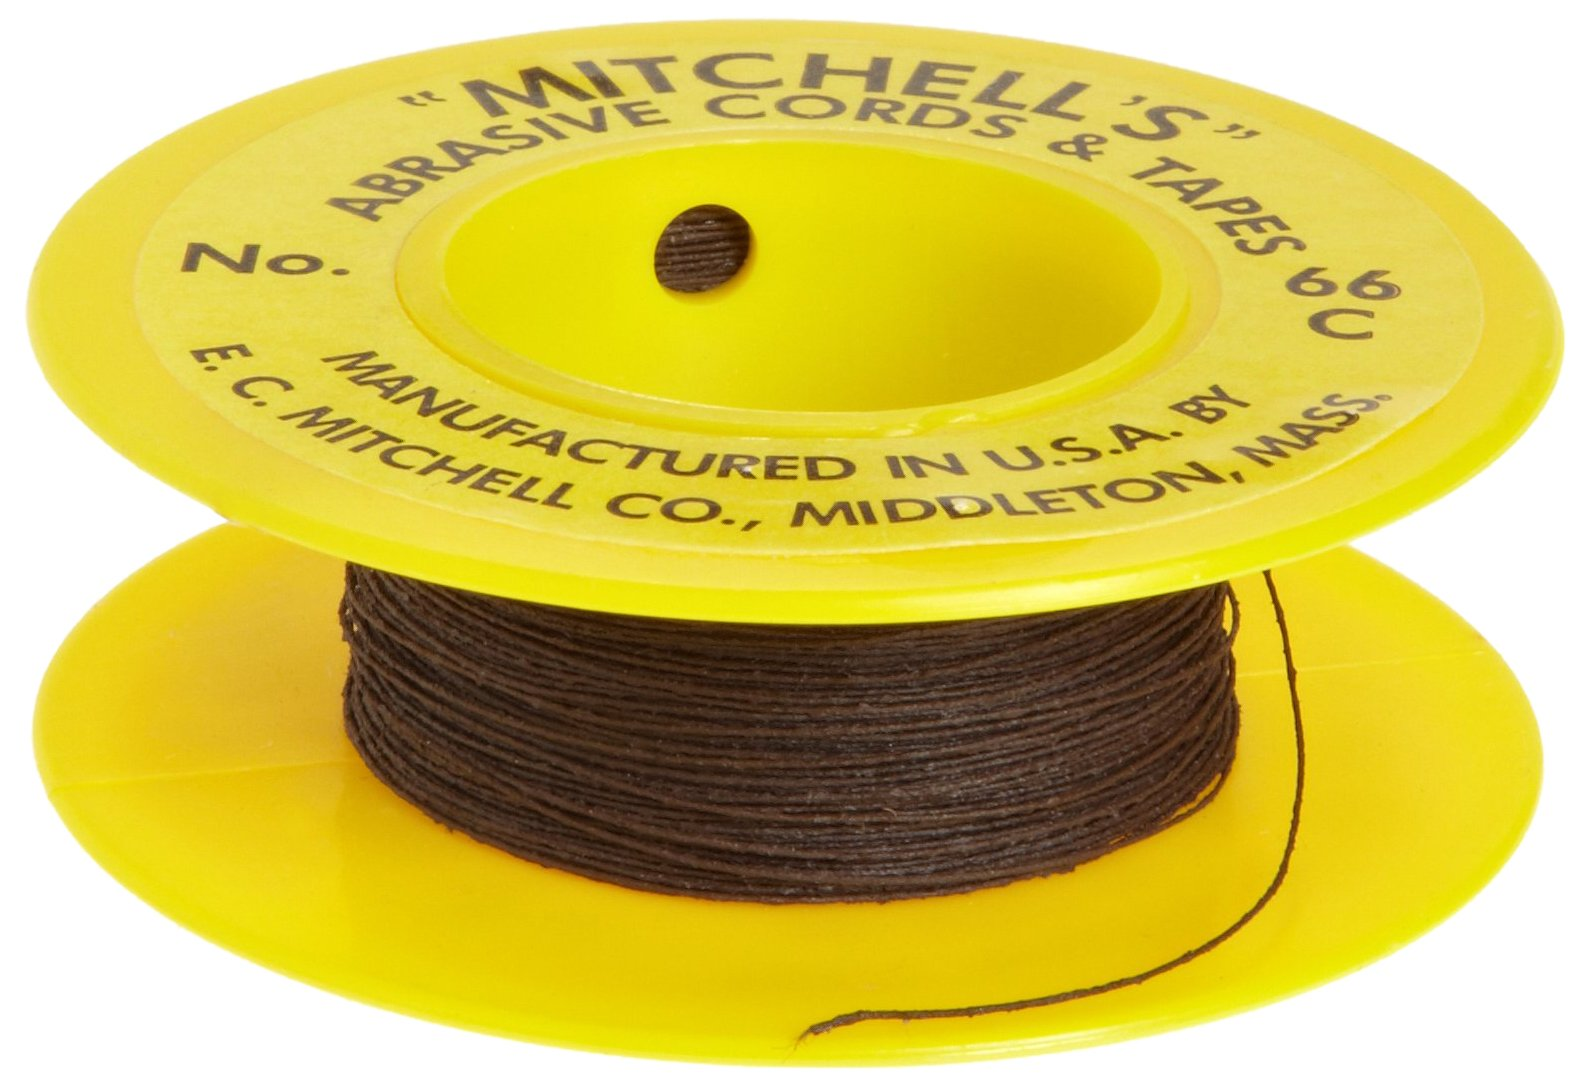 Mitchell Abrasives 66-C Round Crocus Polishing Cord, .012'' Diameter x 25 Feet